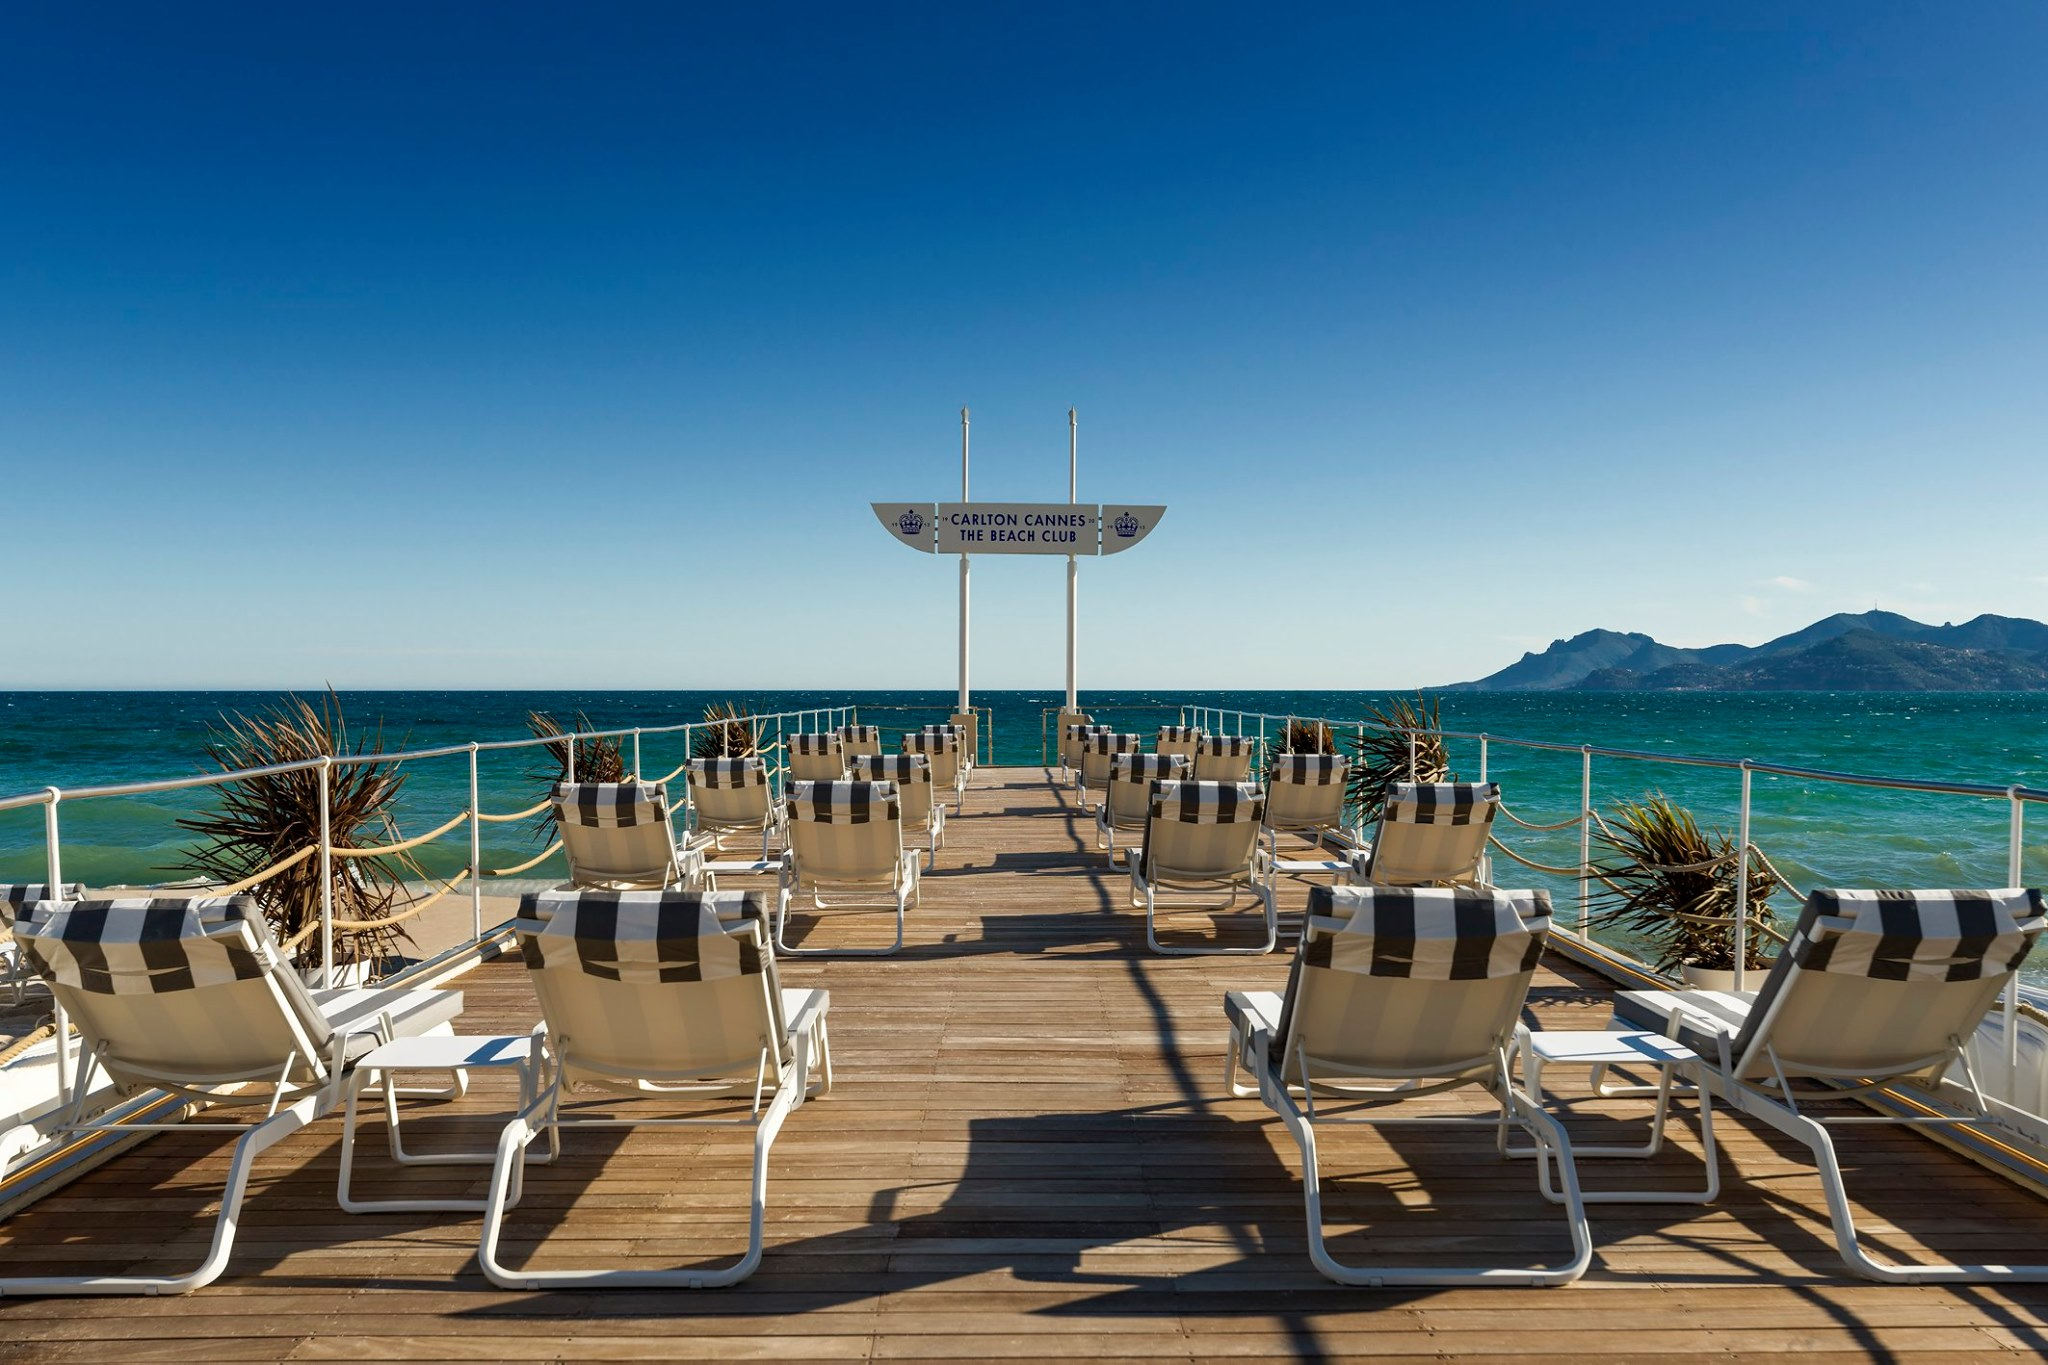 Plage du Carlton Beach Club - Concept 2020 - Photo : Roméo Balancourt